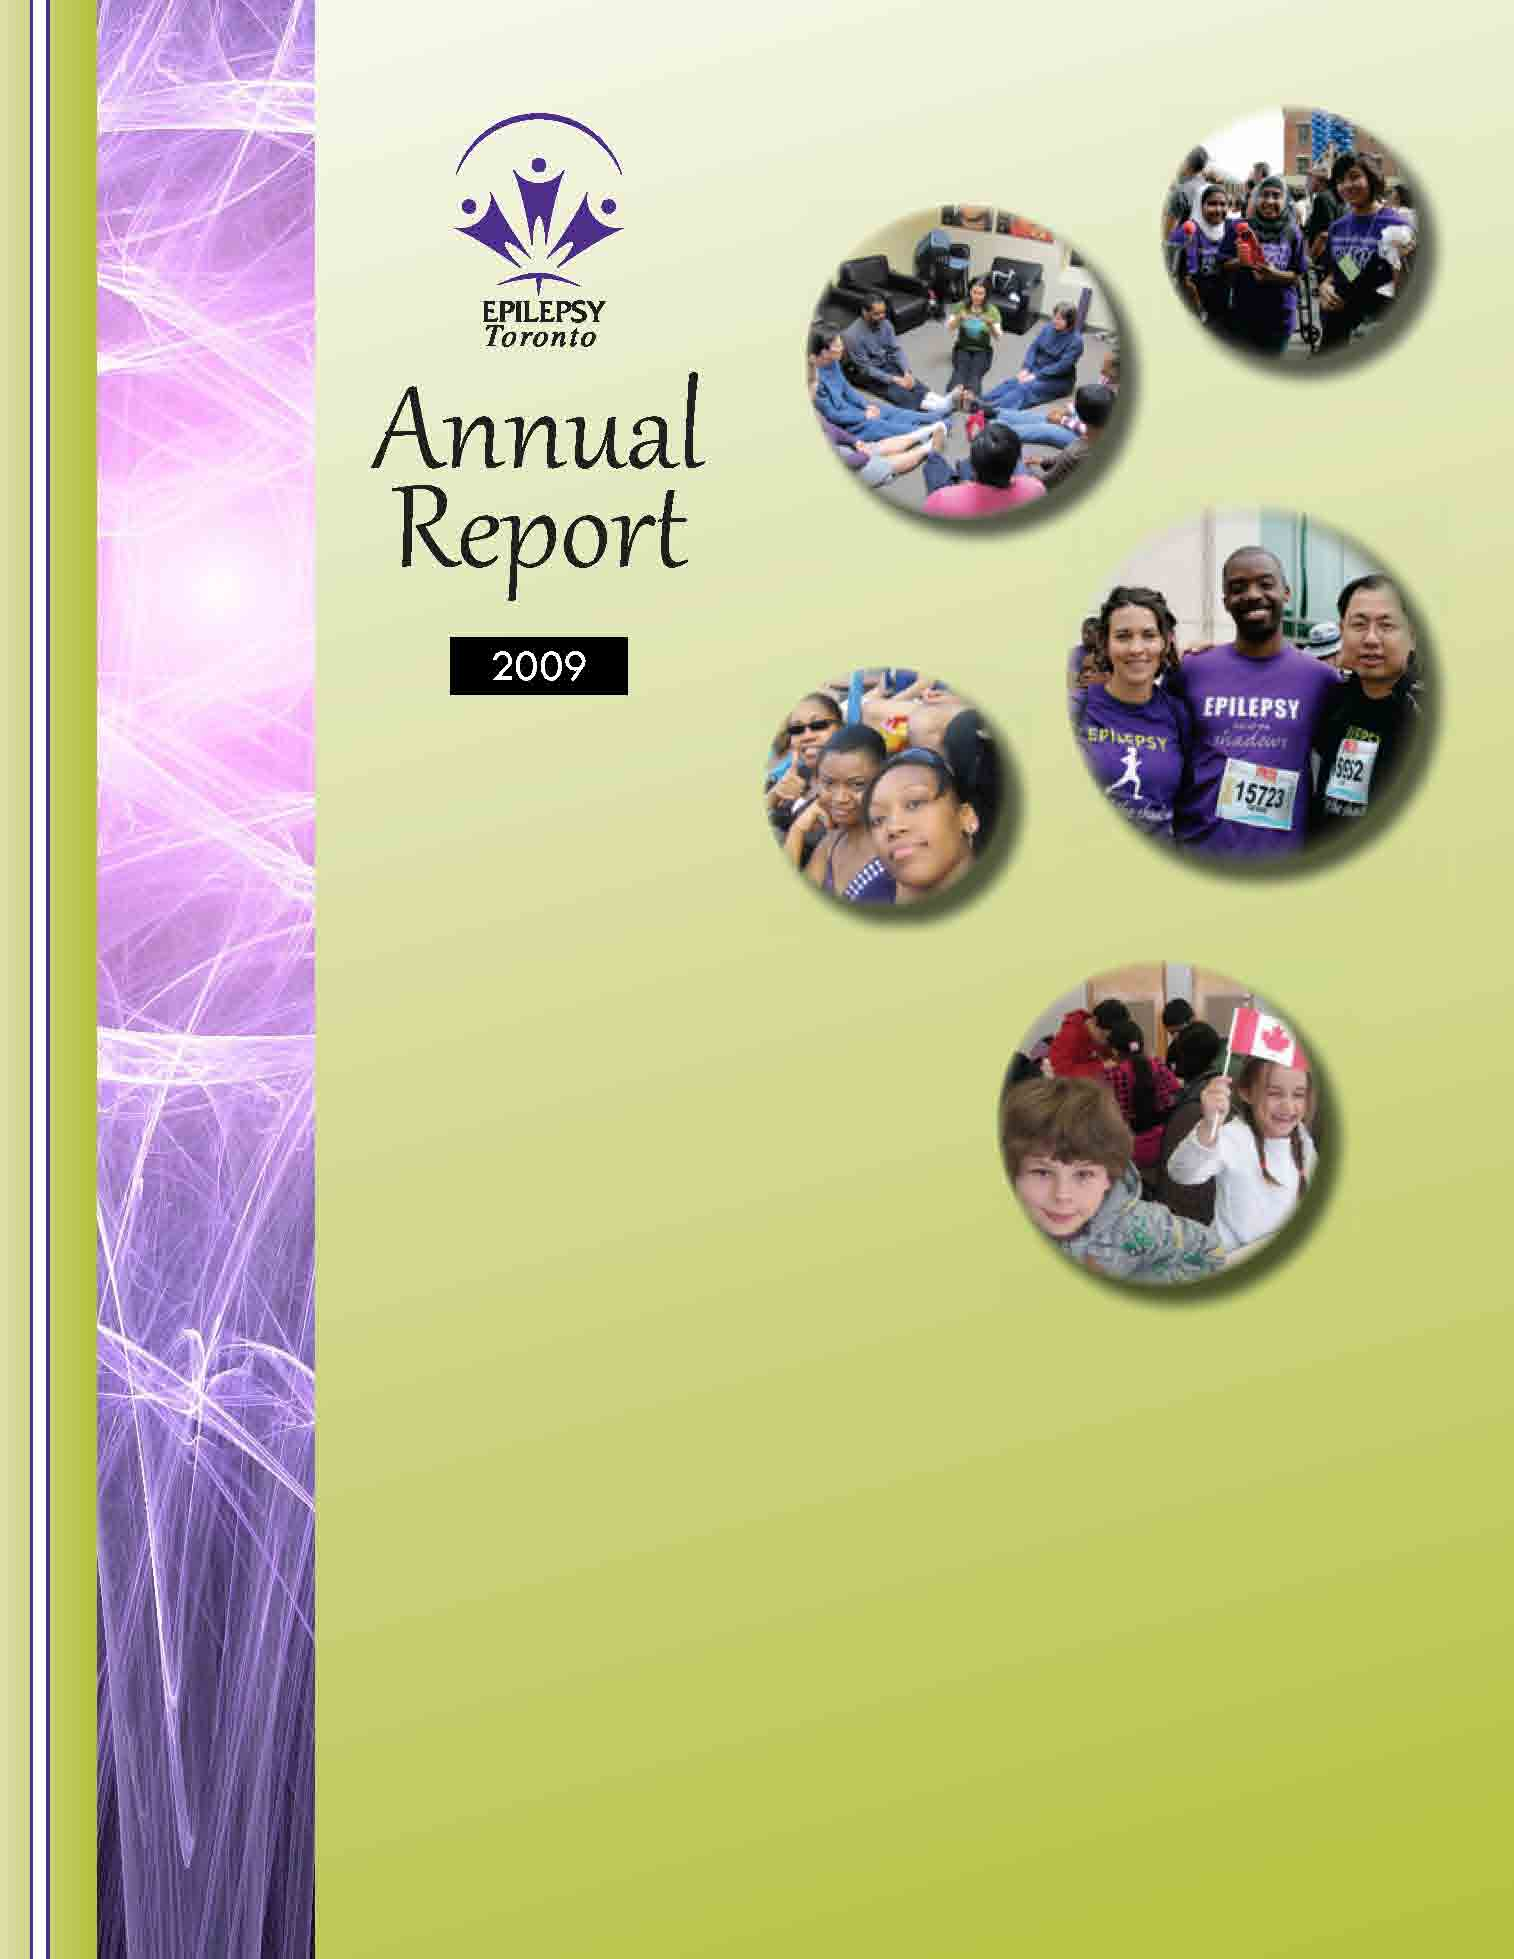 Epilepsy Toronto 2009 Annual Report cover page